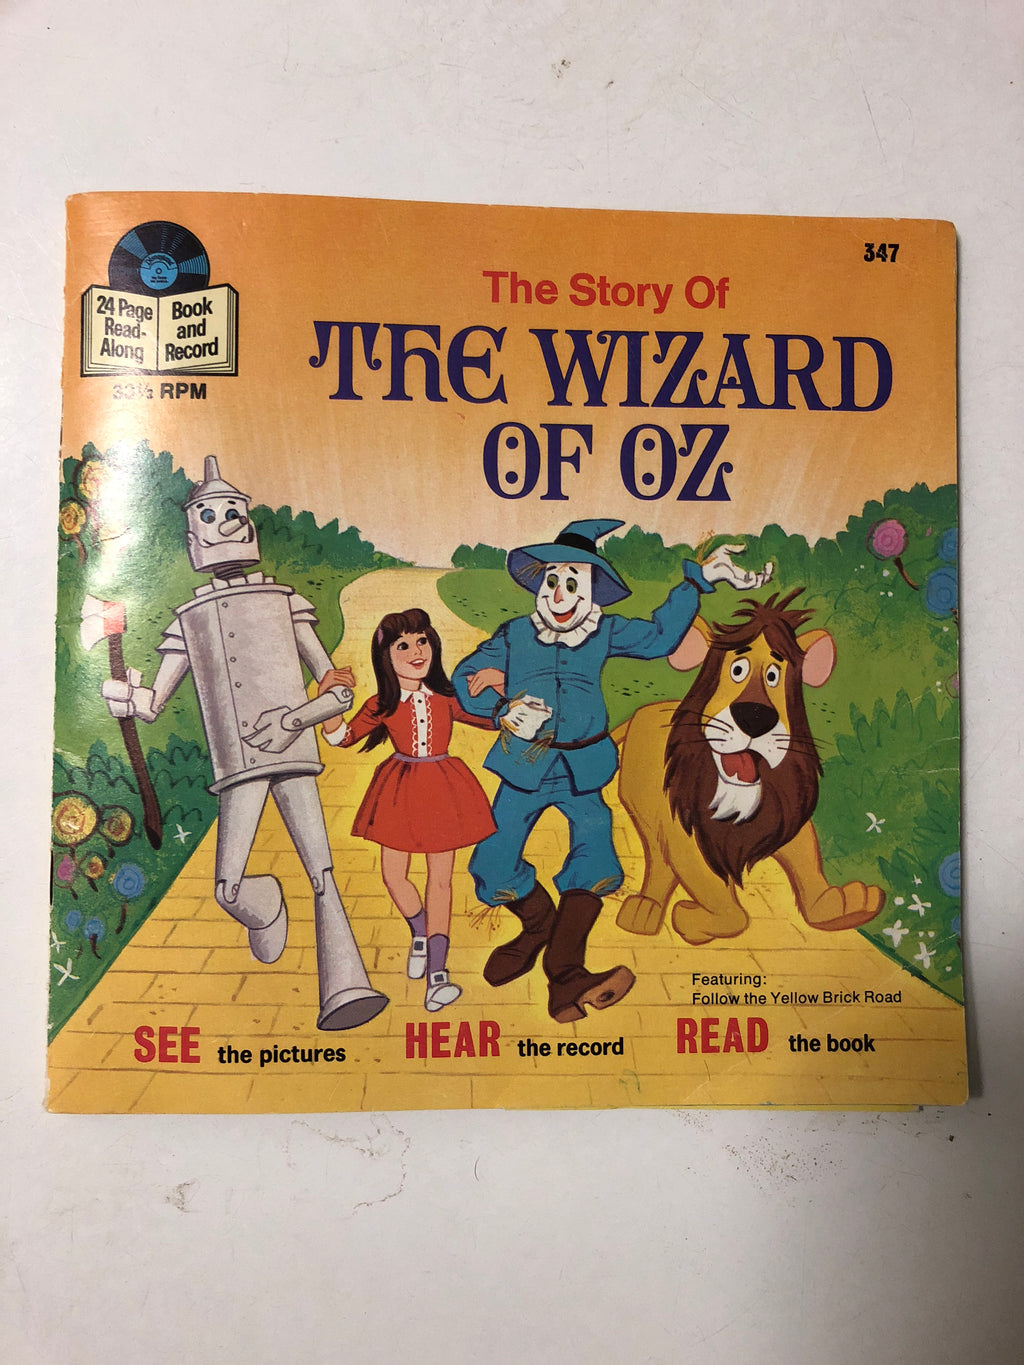 The Story of The Wizard of Oz - Slick Cat Books